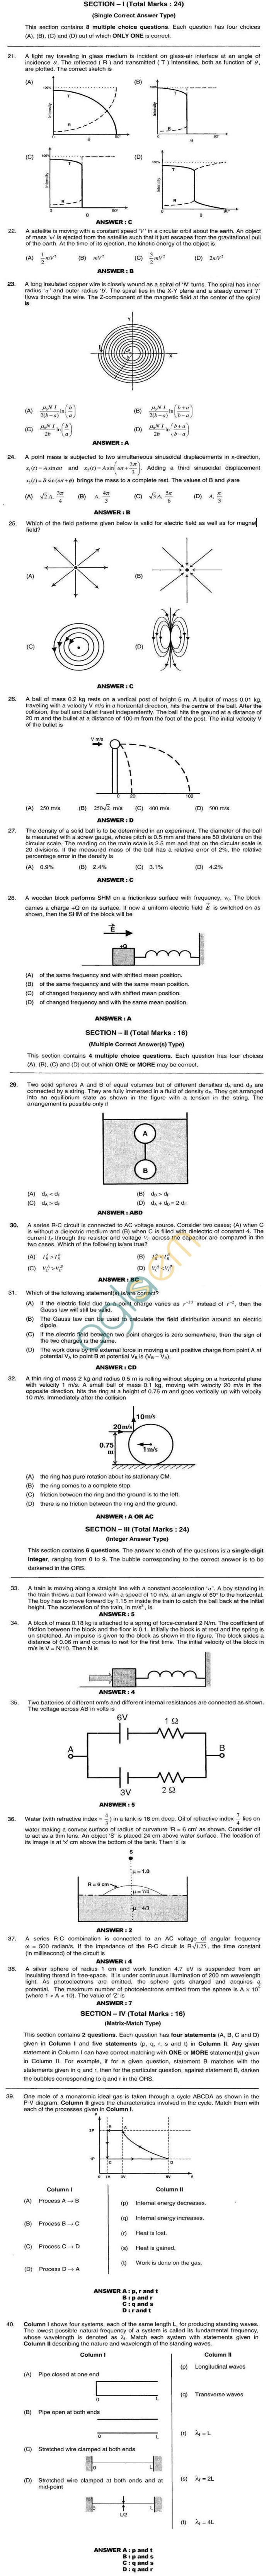 JEE Advanced 2017 Physics Practice Papers